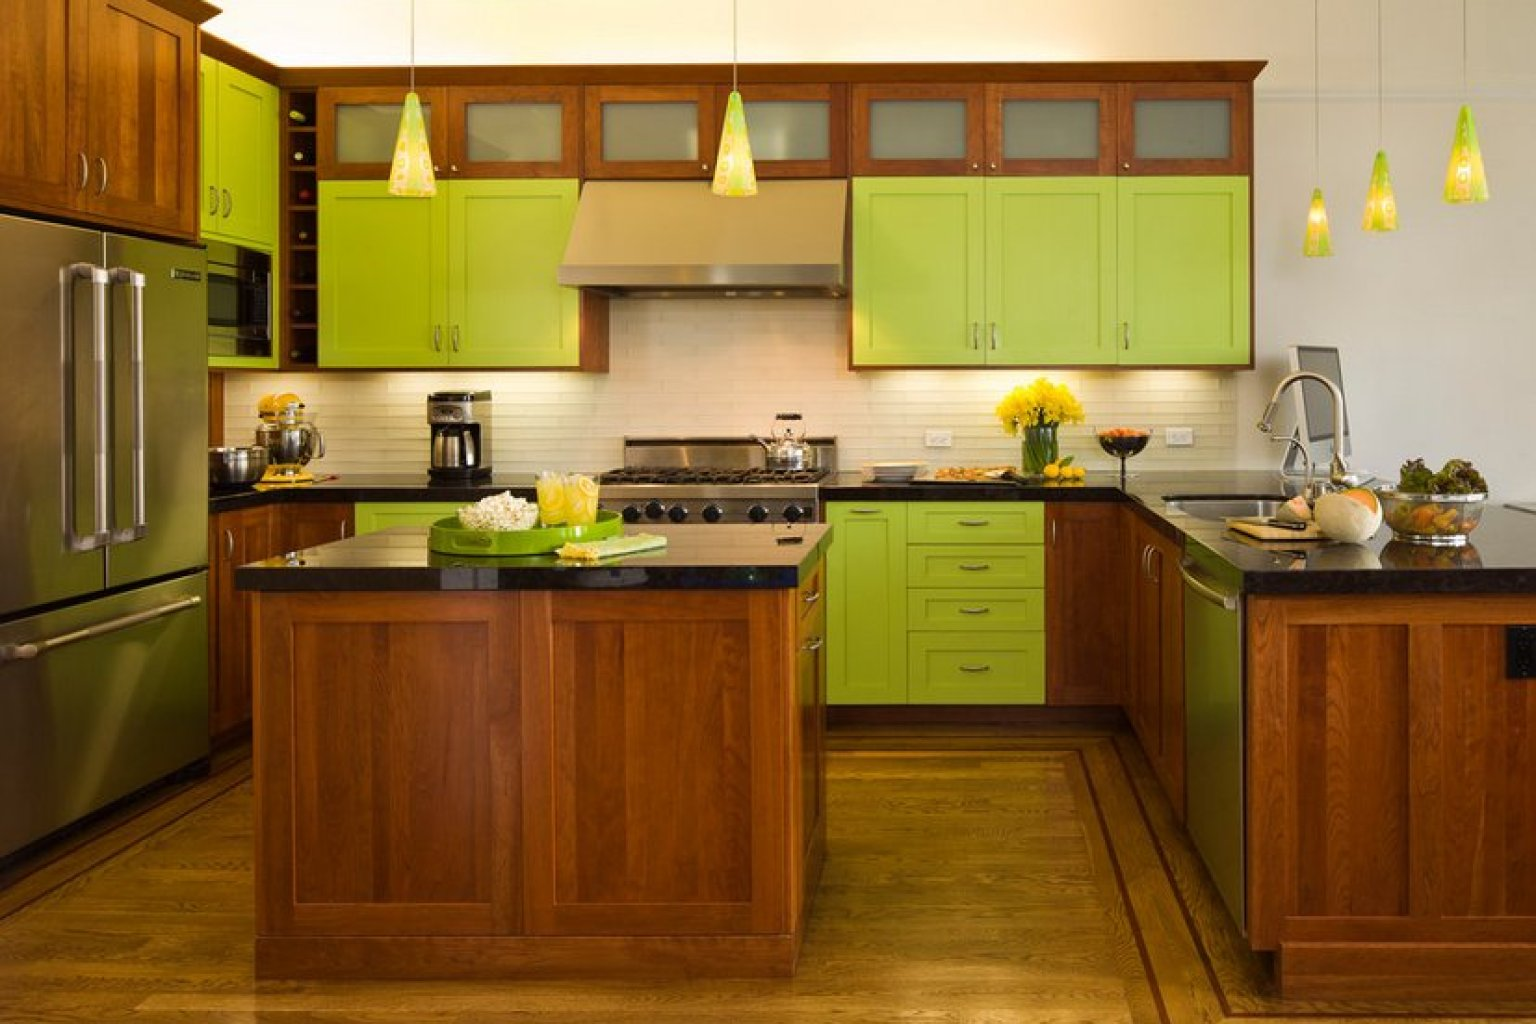 white kitchen cabinets turning yellow 8 reasons why you should paint everything lime green 28956